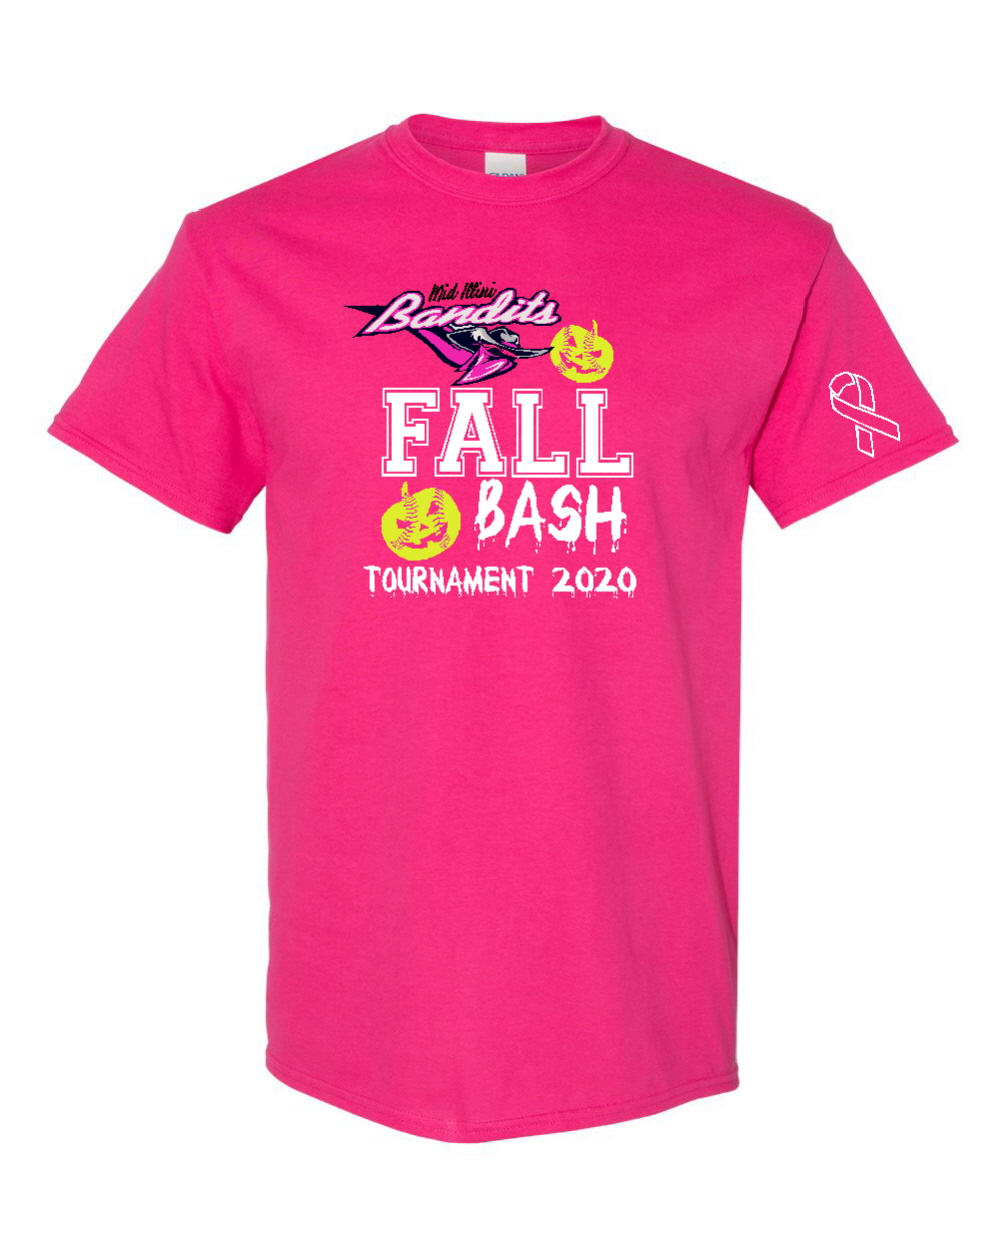 Bandits Fall Bash Pink/Gray